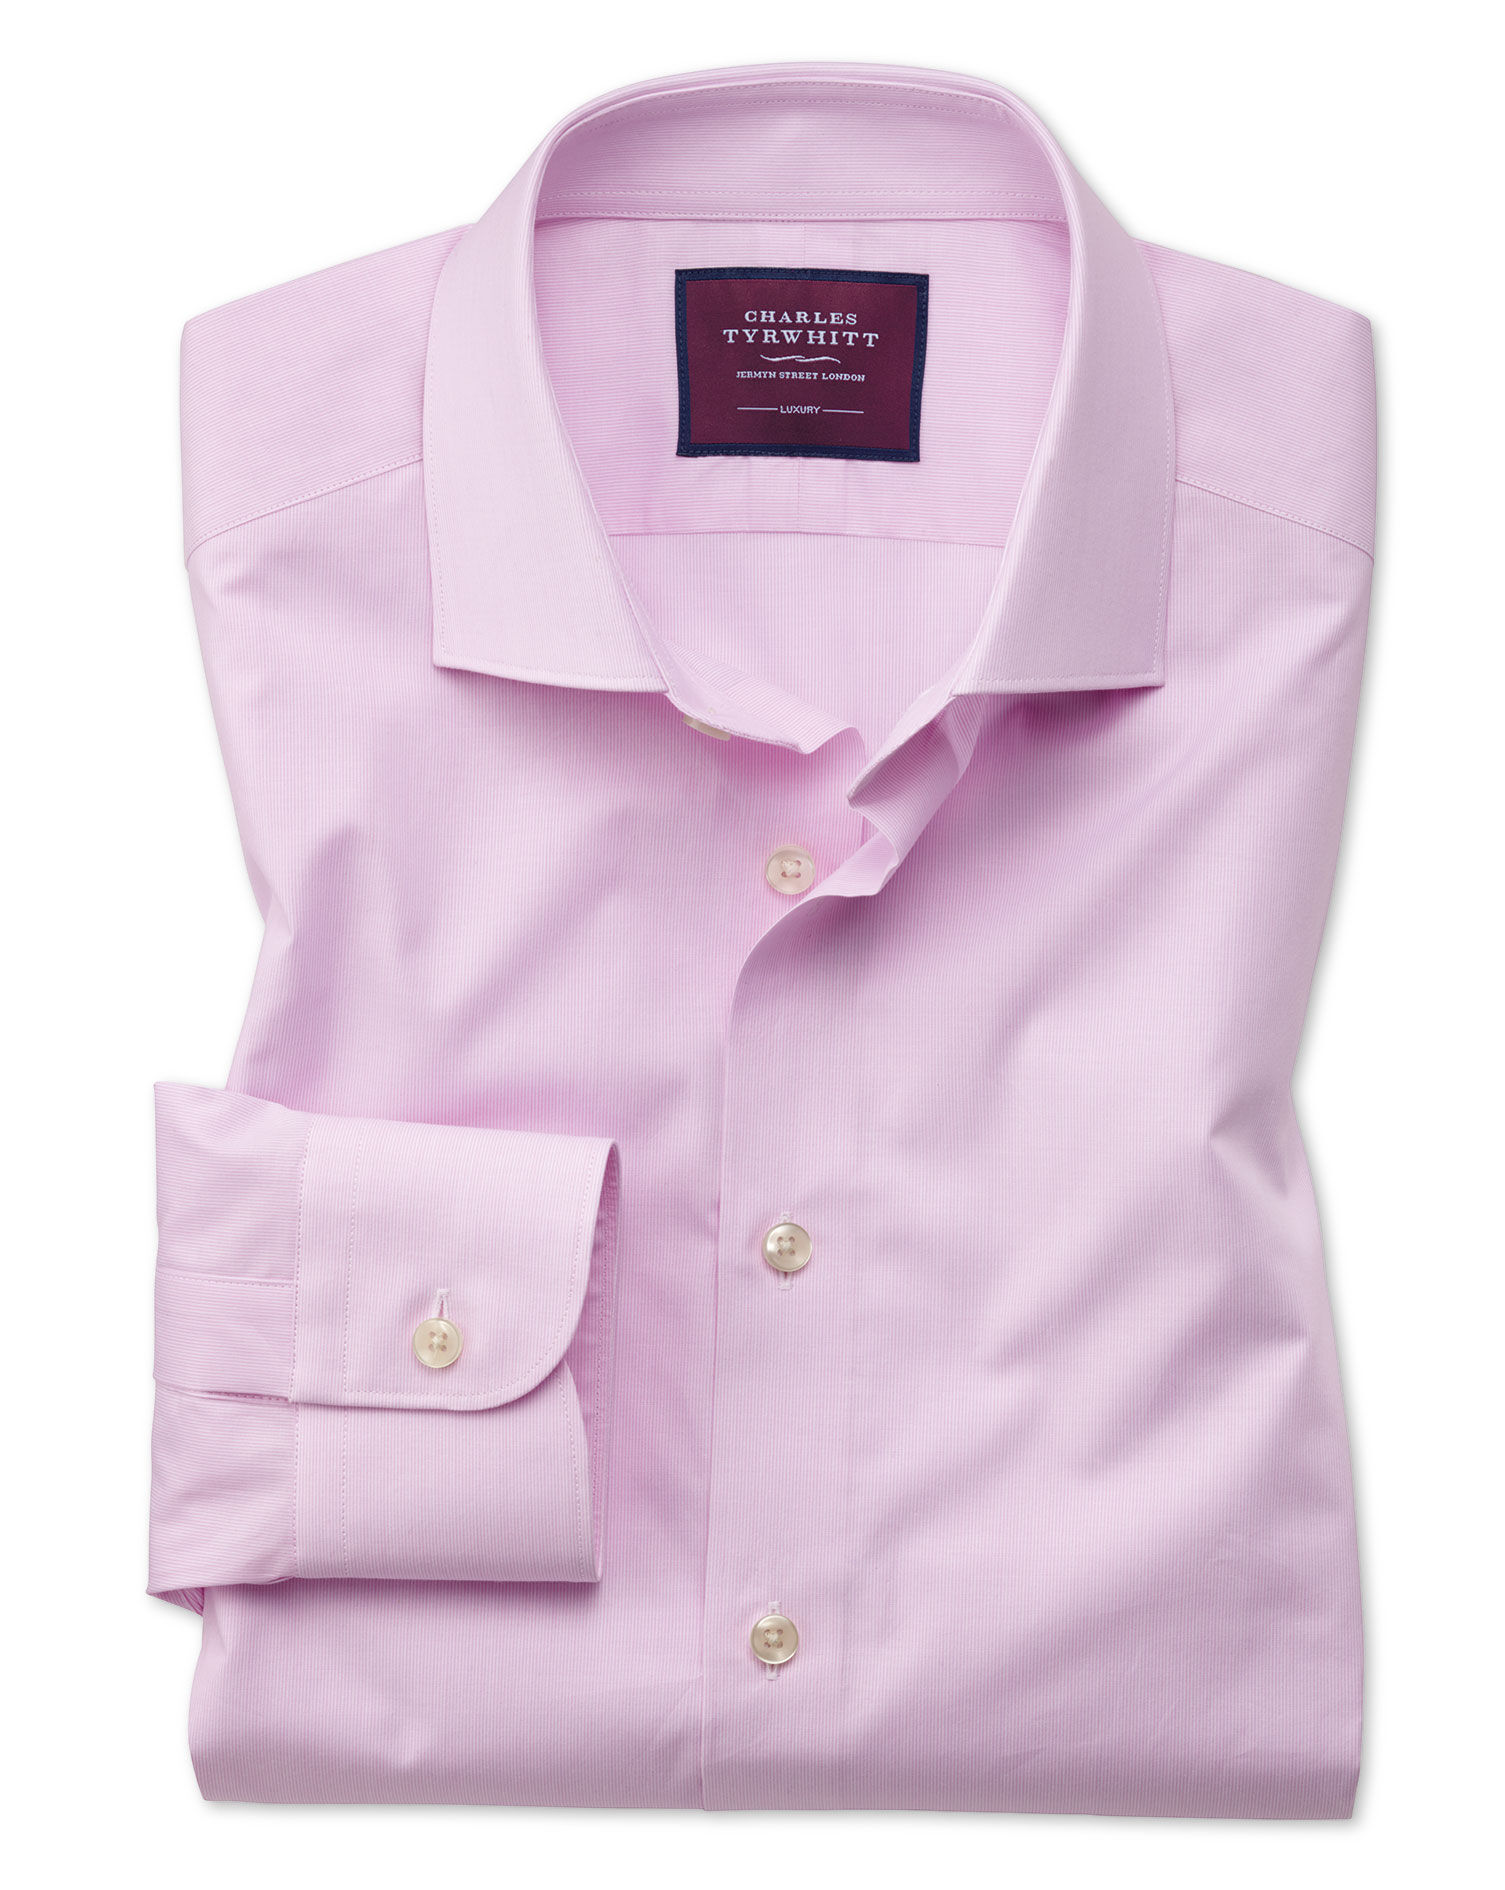 Classic Fit Pink Fine Stripe Luxury Cotton Formal Shirt Single Cuff Size 17.5/35 by Charles Tyrwhitt